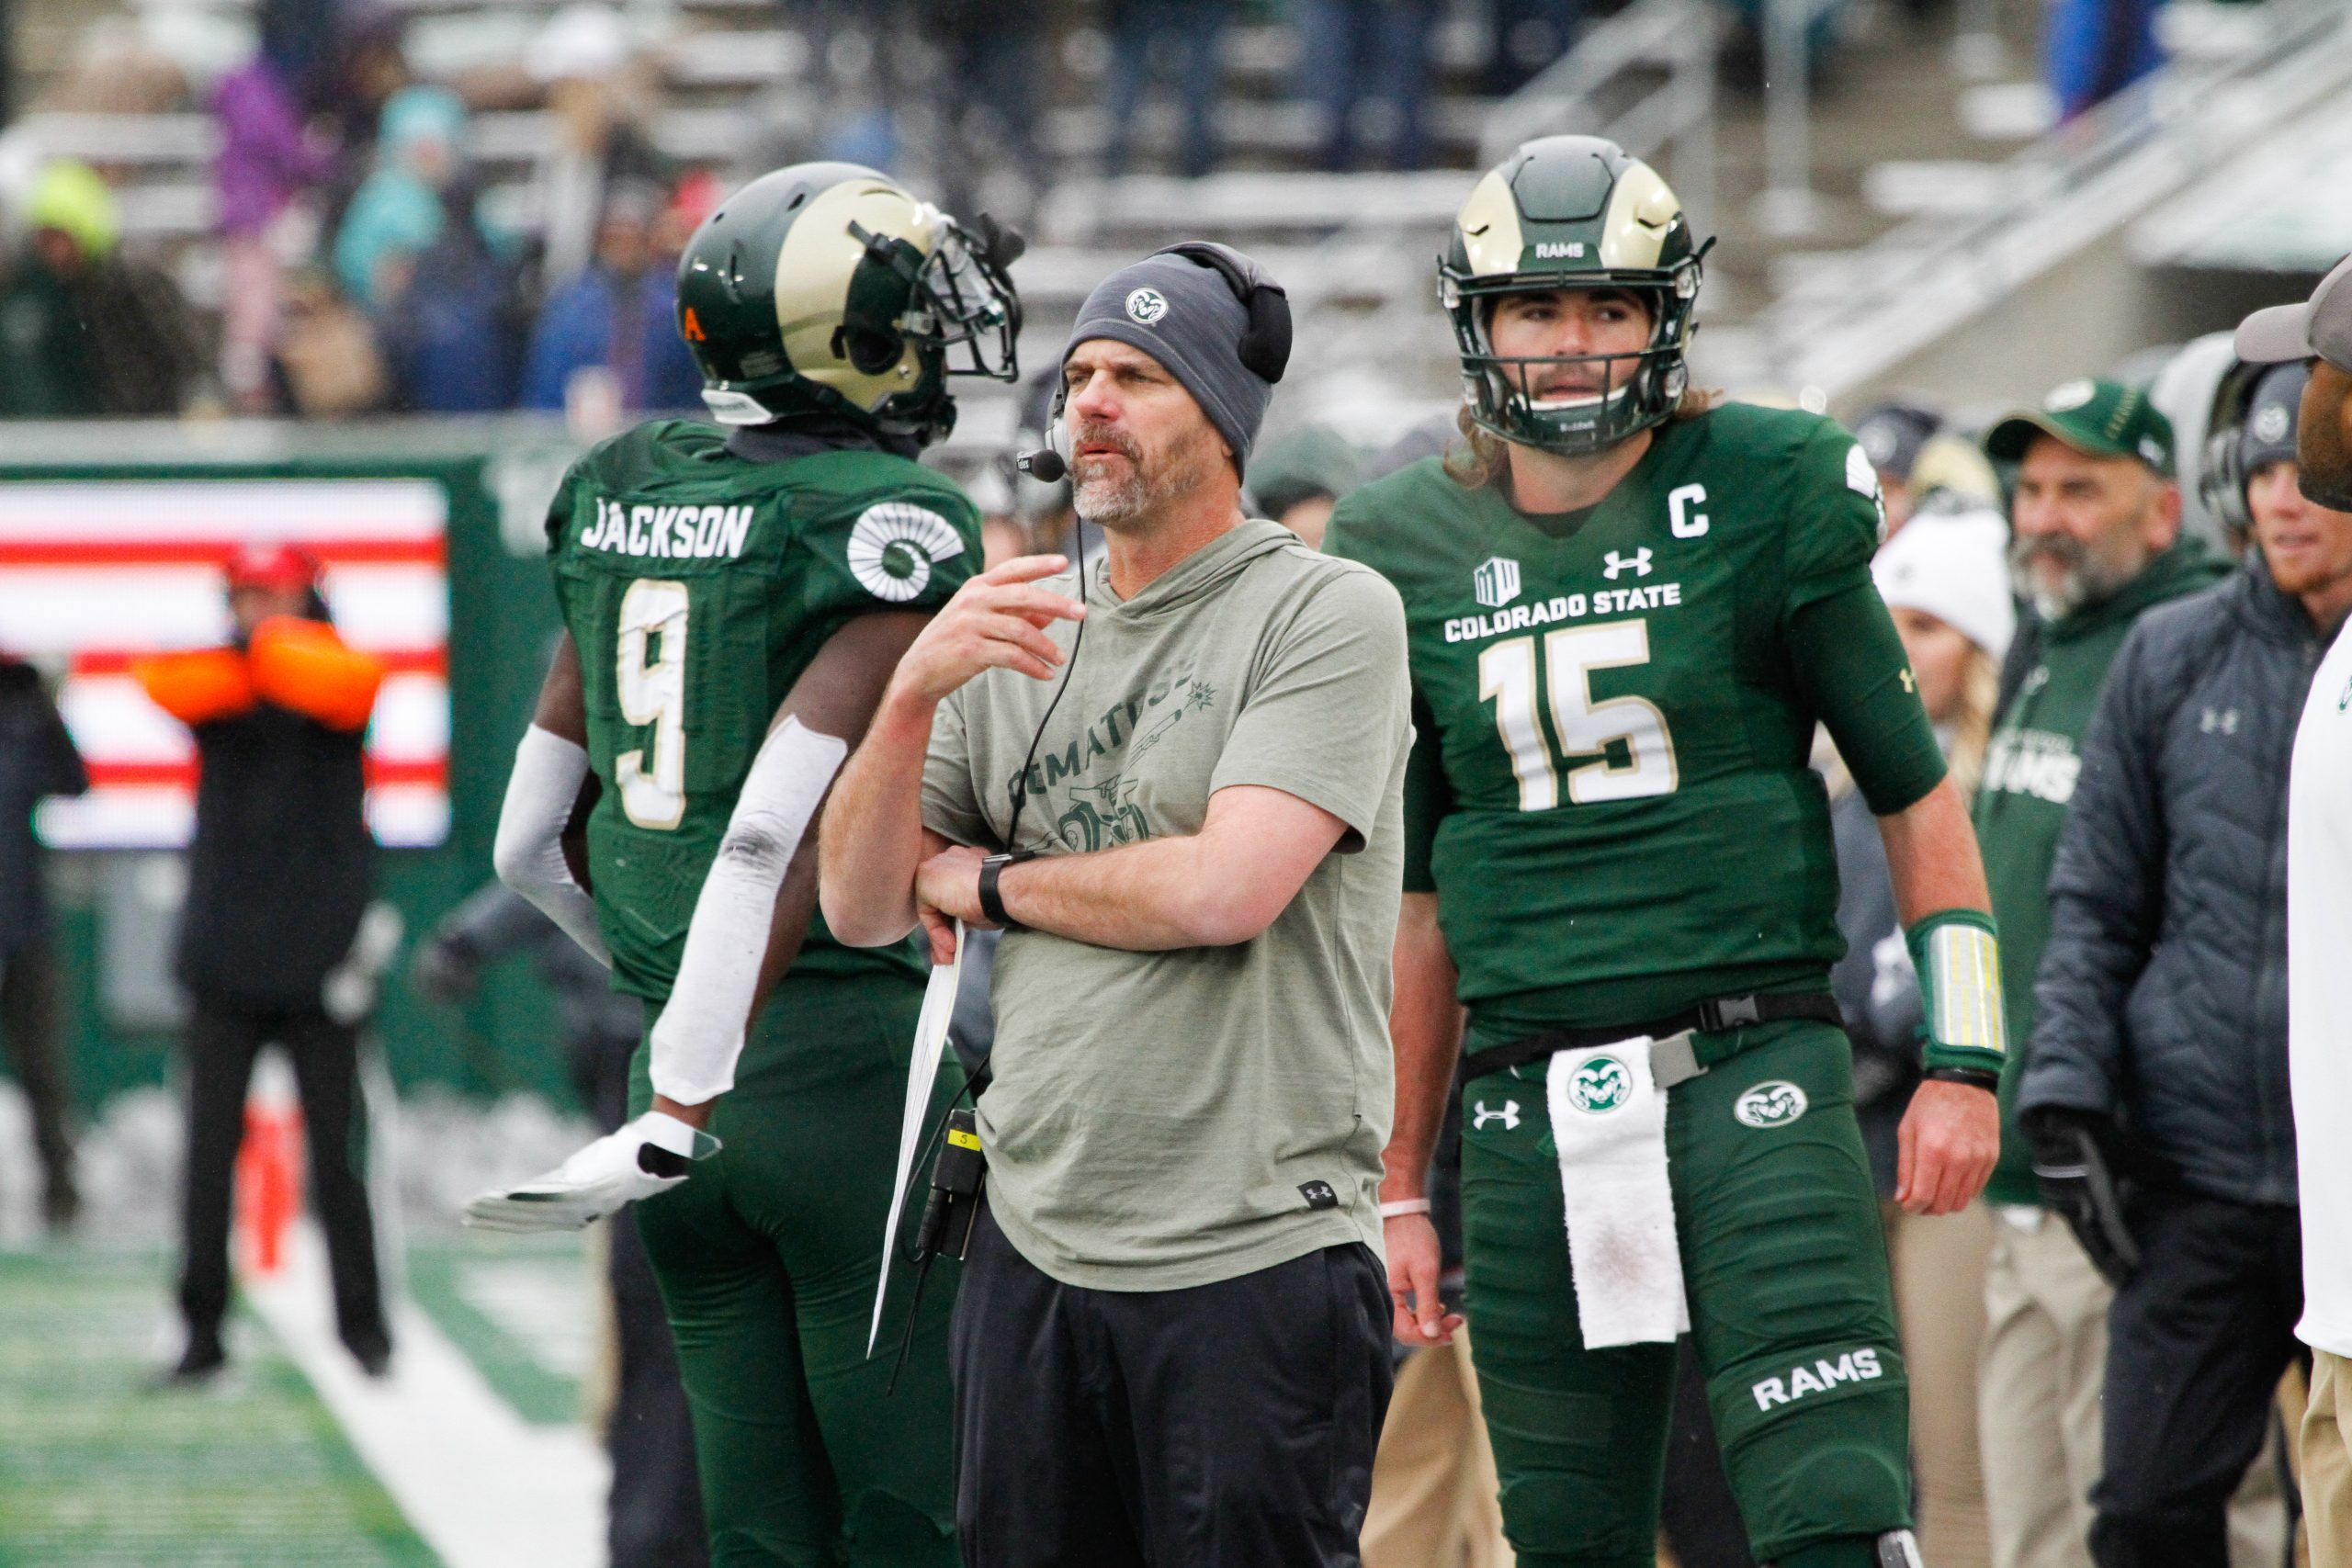 Colorado State Football S Complete 2019 Schedule Released